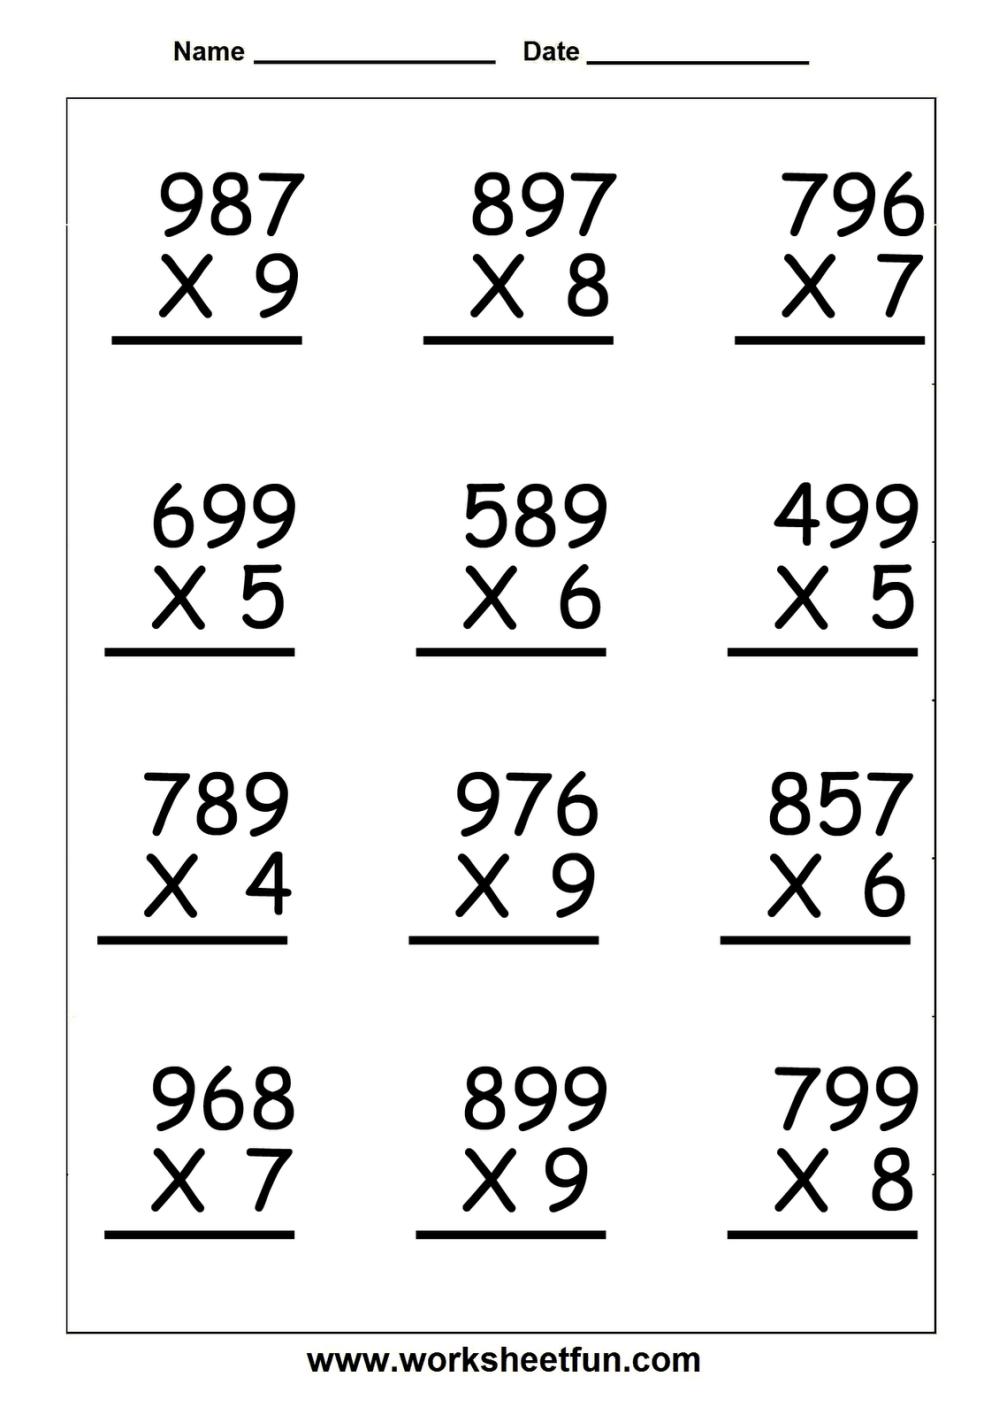 medium resolution of 21 Best 4 And 5th Grade Math Worksheets images on Worksheets Ideas